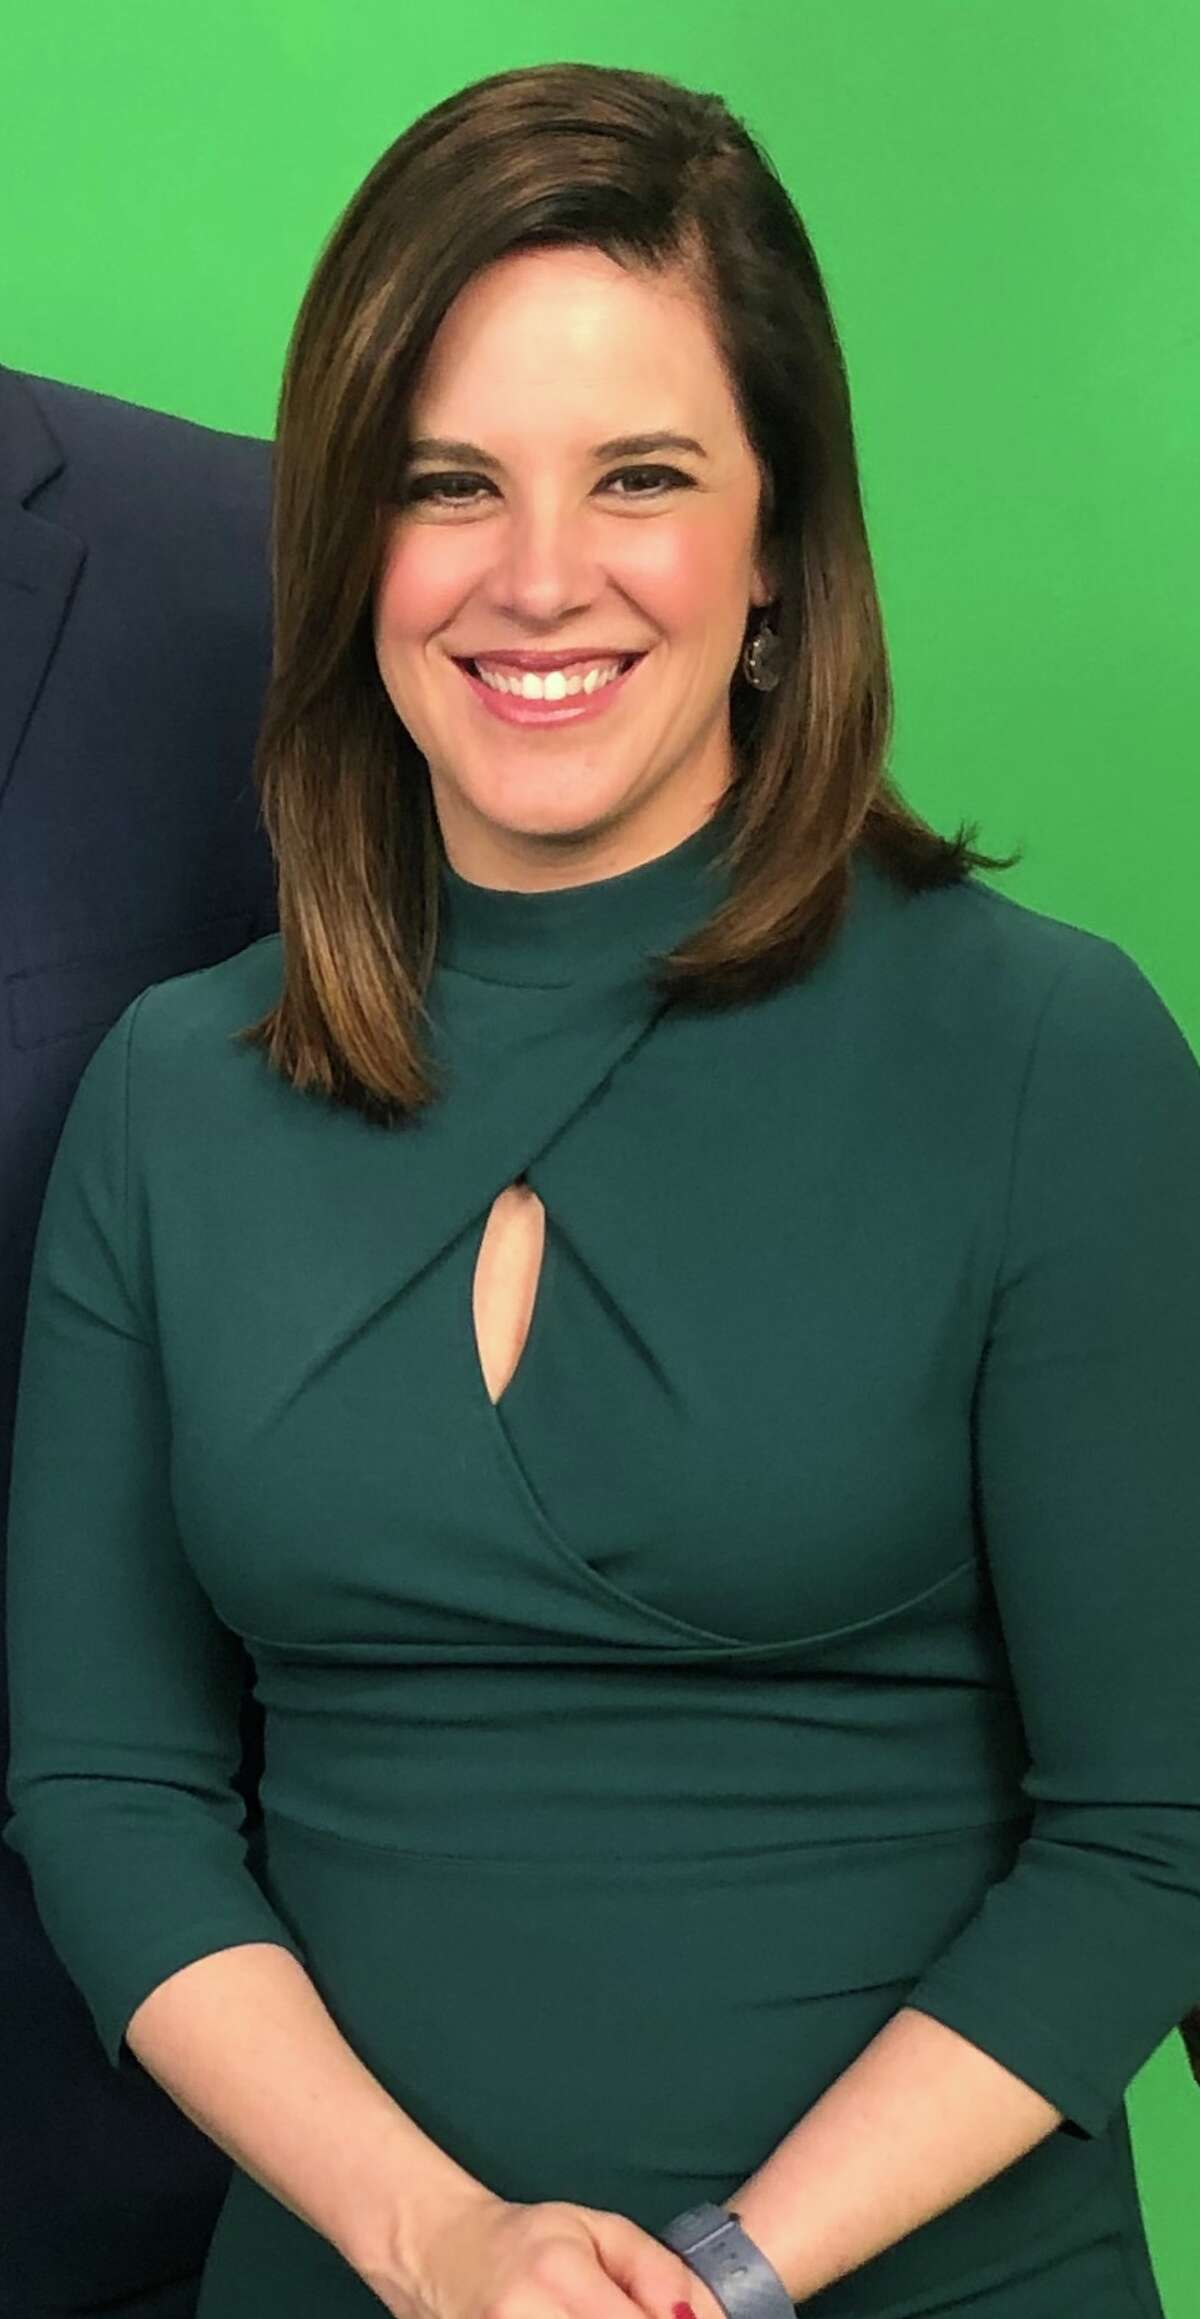 Nicol Lally is leaving WTEN. Her last day at the station will be July 31.